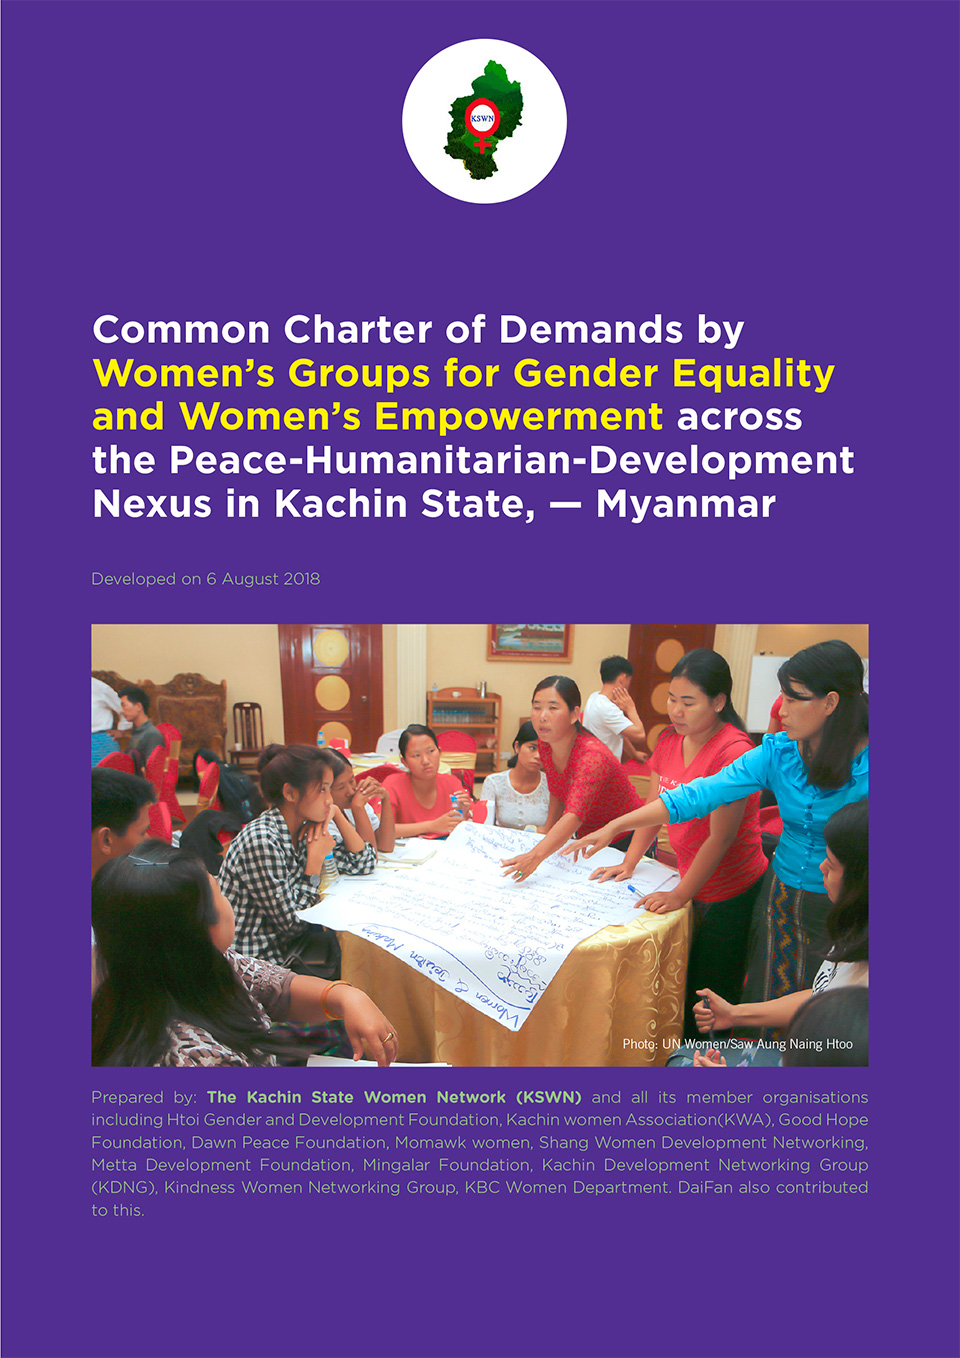 Common Charter of Demands by Women's Groups for Gender Equality and Women's Empowerment across the Peace-Humanitarian-Development Nexus in Kachin State, Myanmar